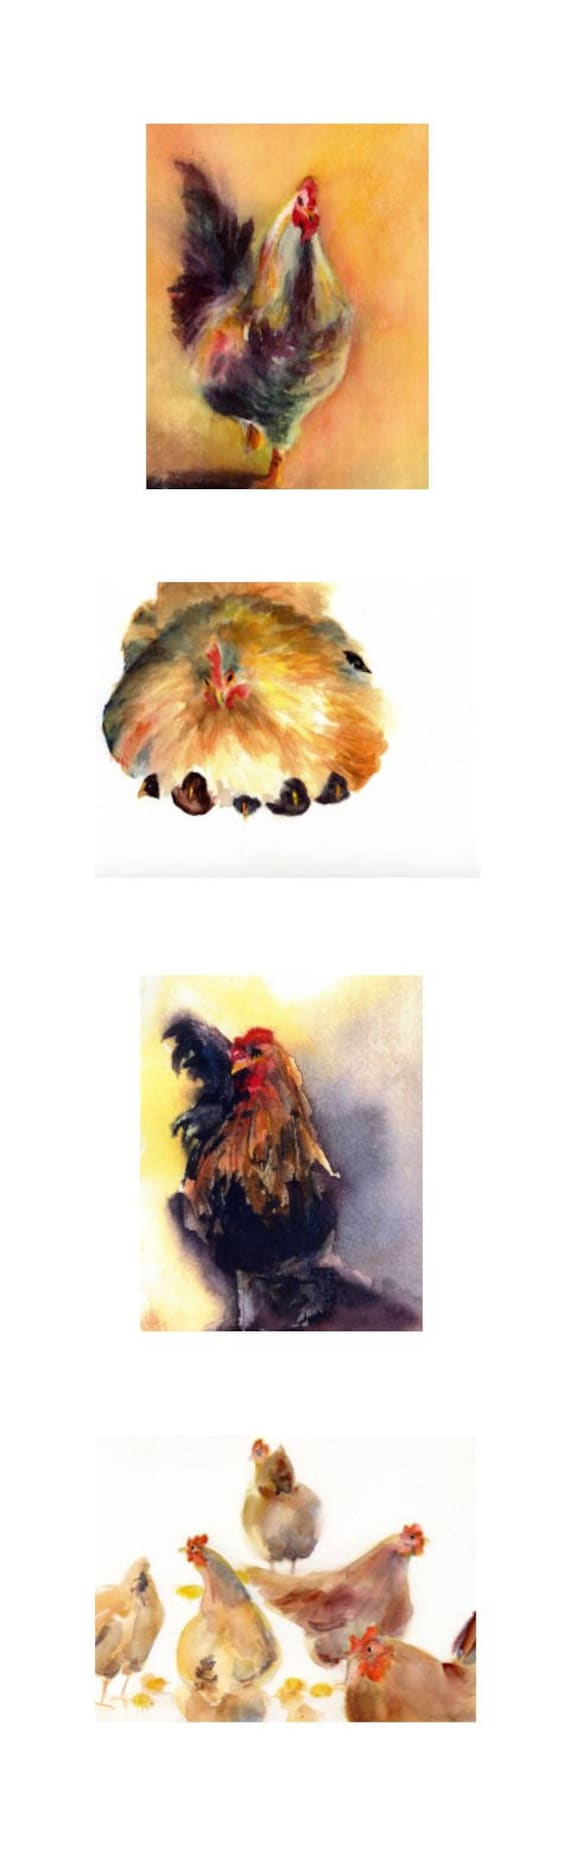 8x26 - chickens and roosters 4 signed watercolor prints by Bonnie White